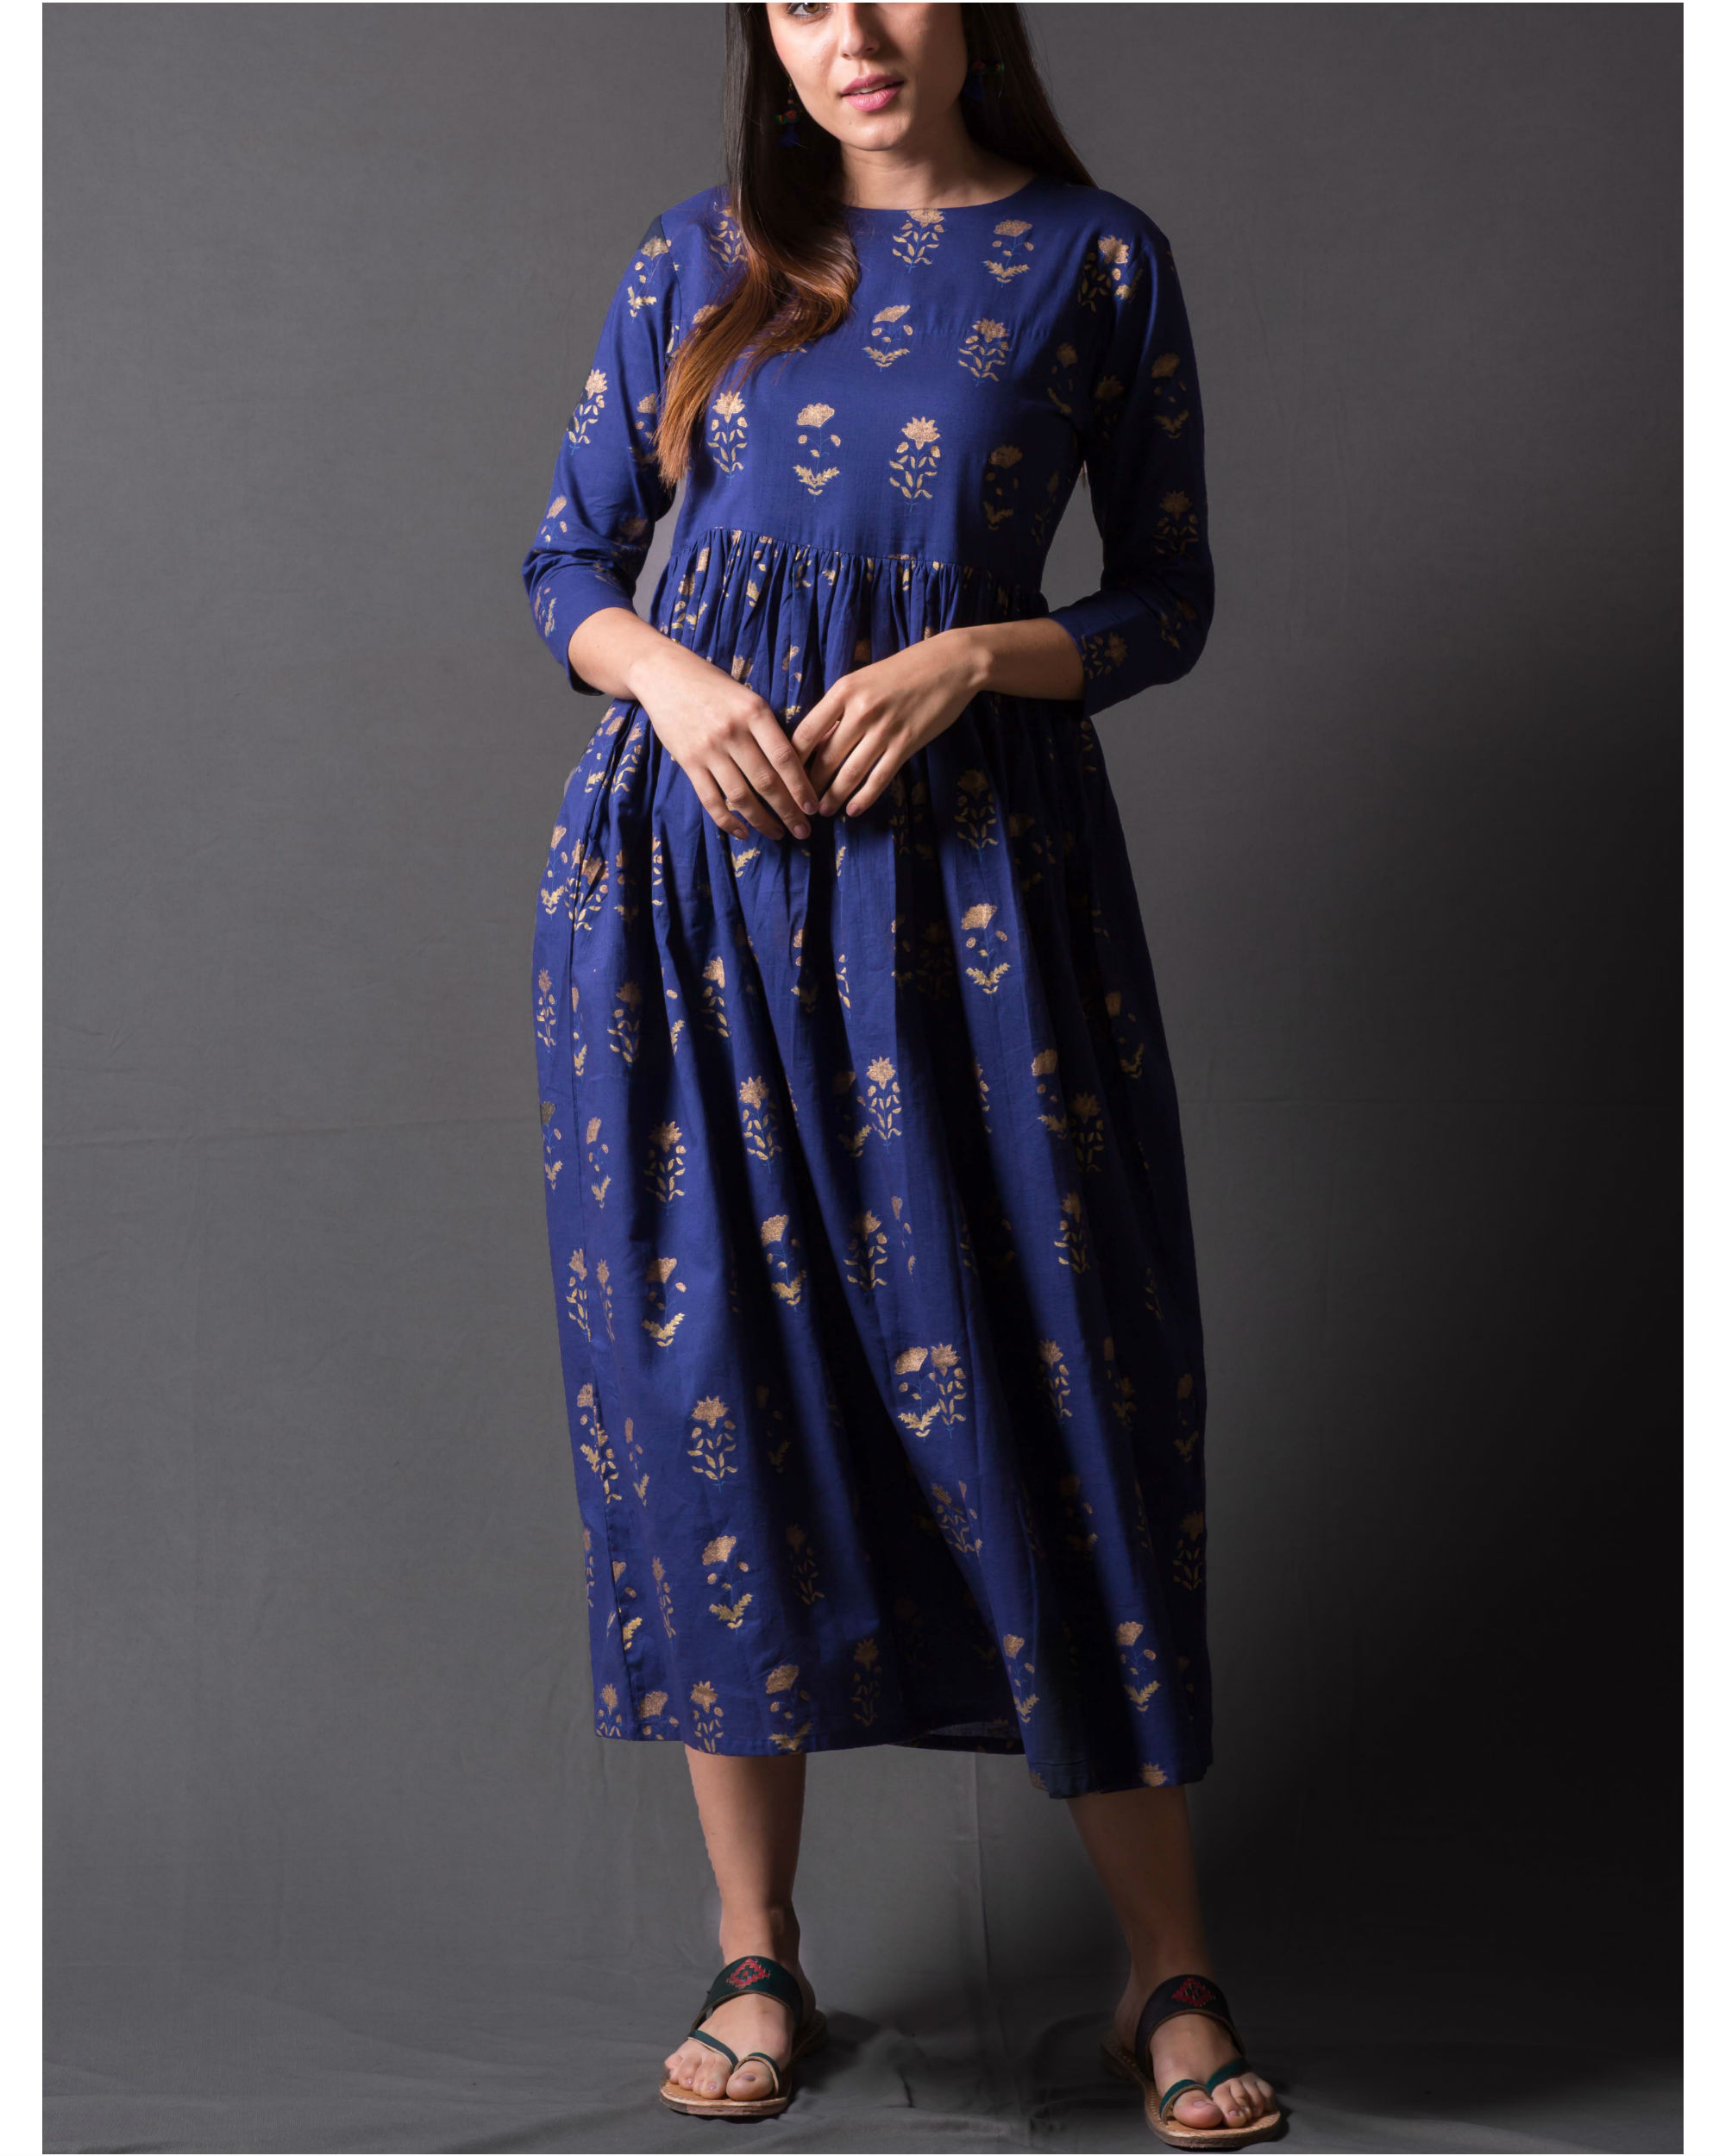 Navy blue daisy block printed dress